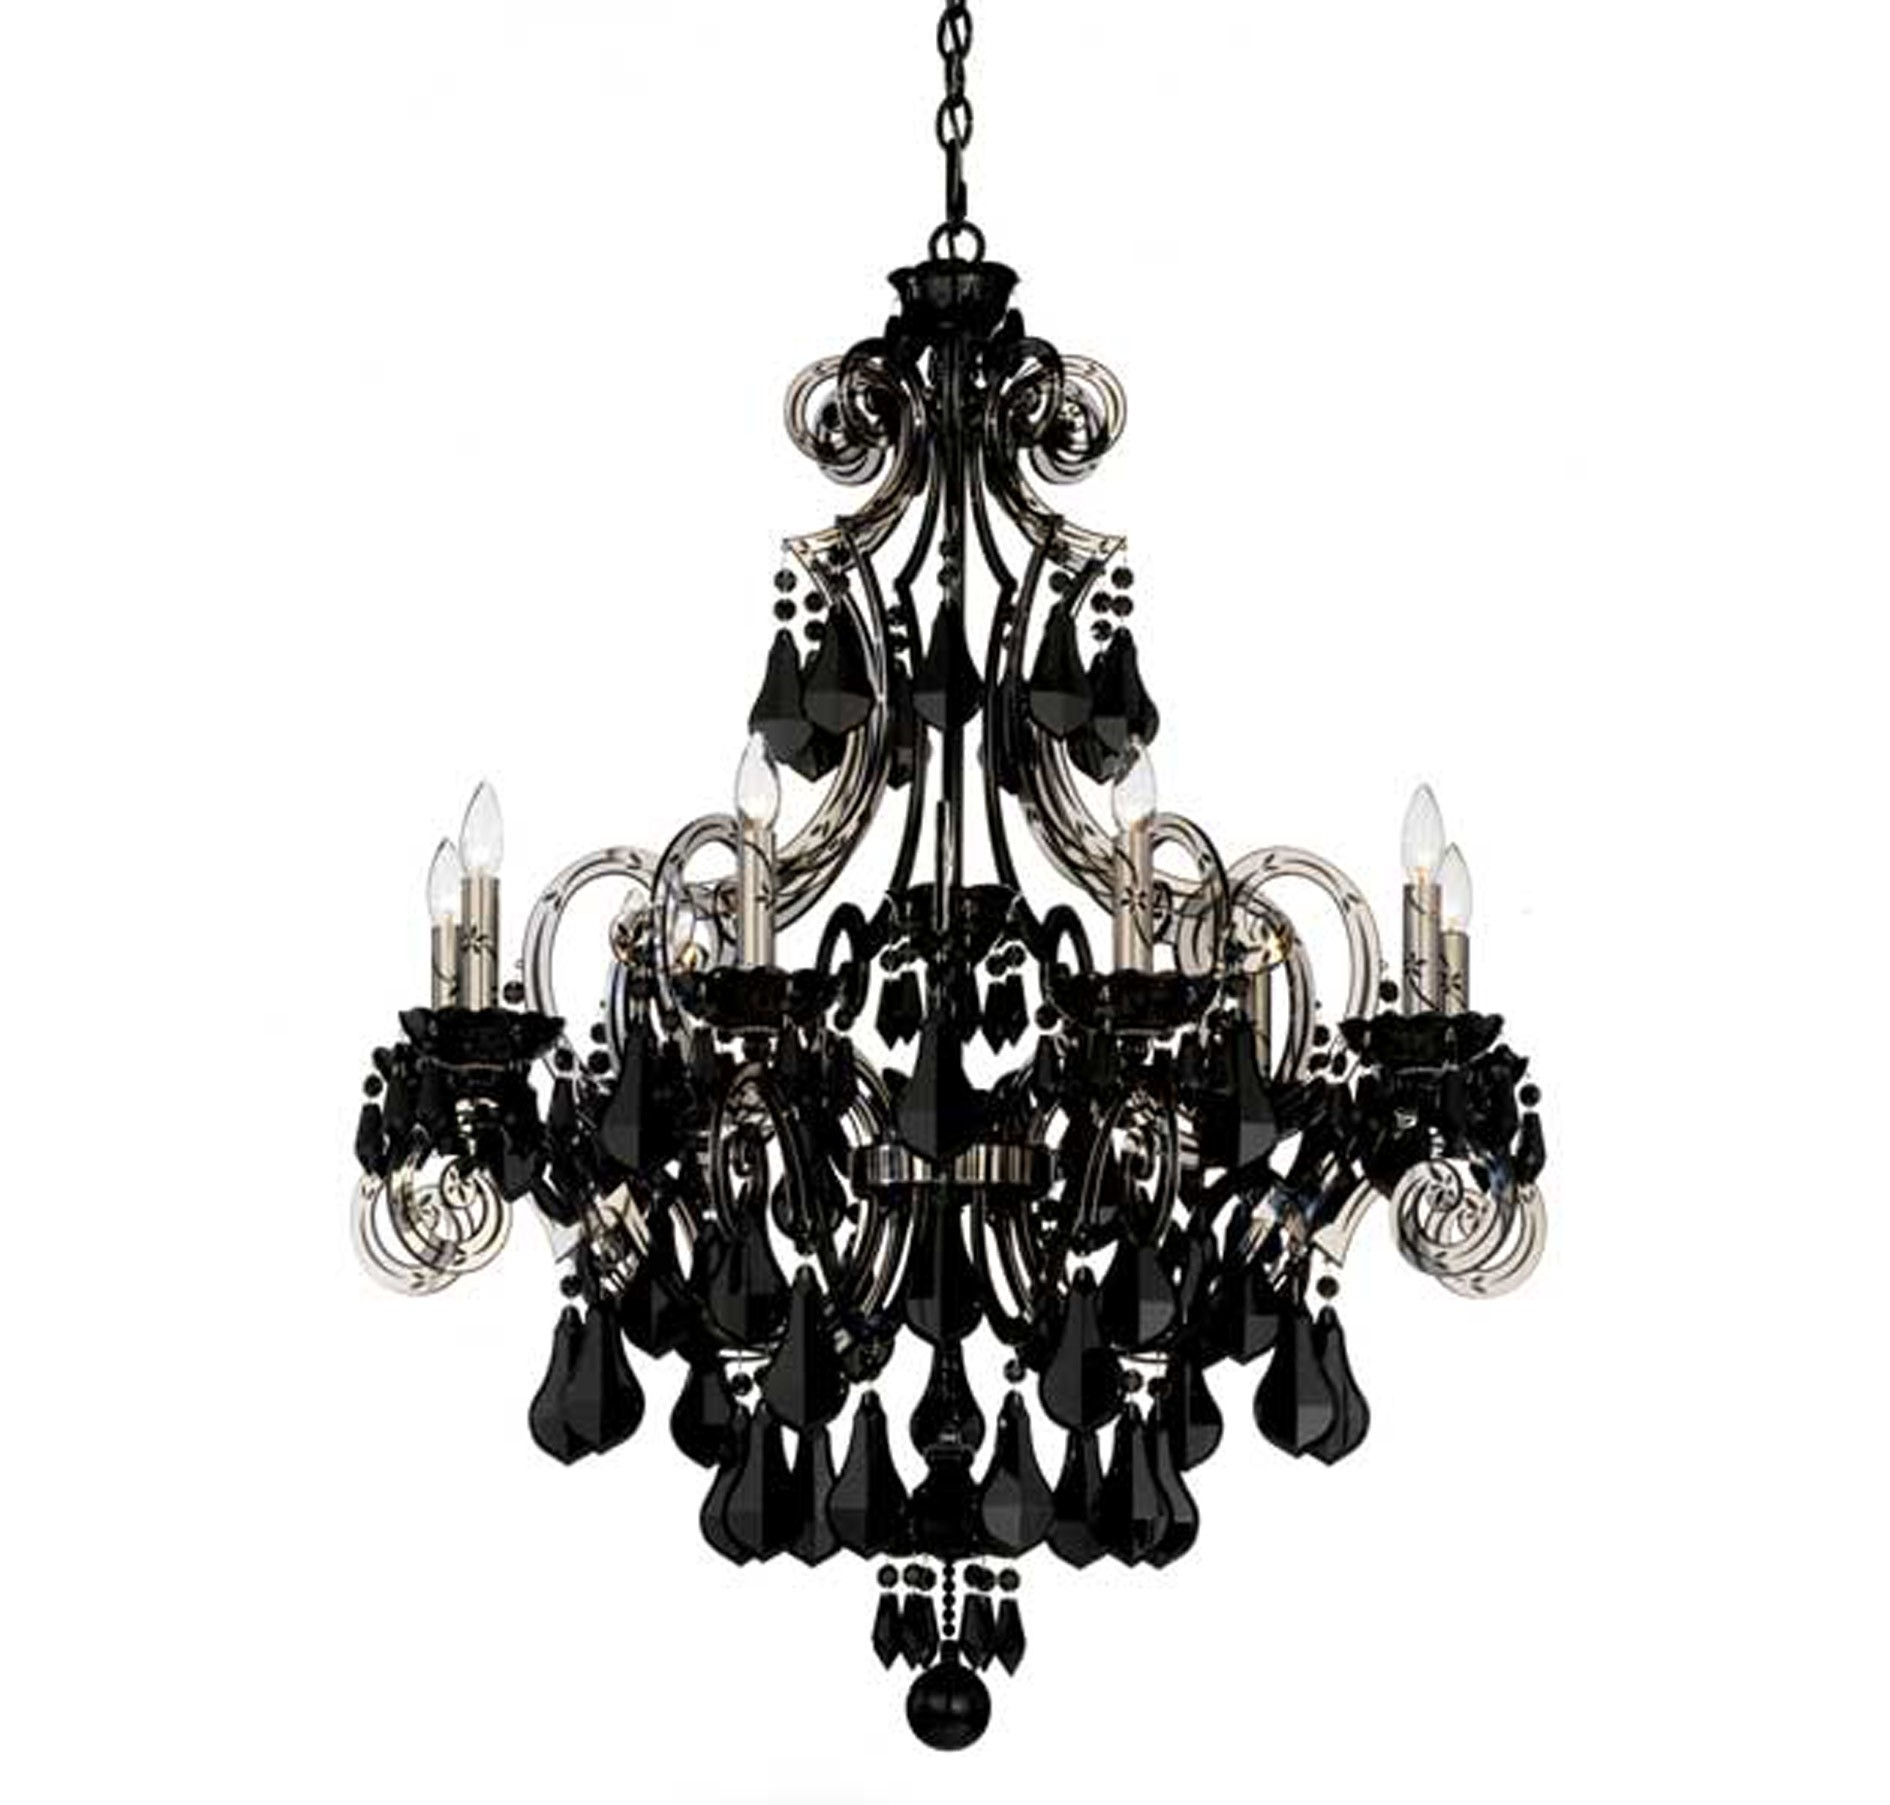 Jet black chandelier crystal lighting 30x28 amazoncom collection of black chandeliers black chandelier arubaitofo Gallery